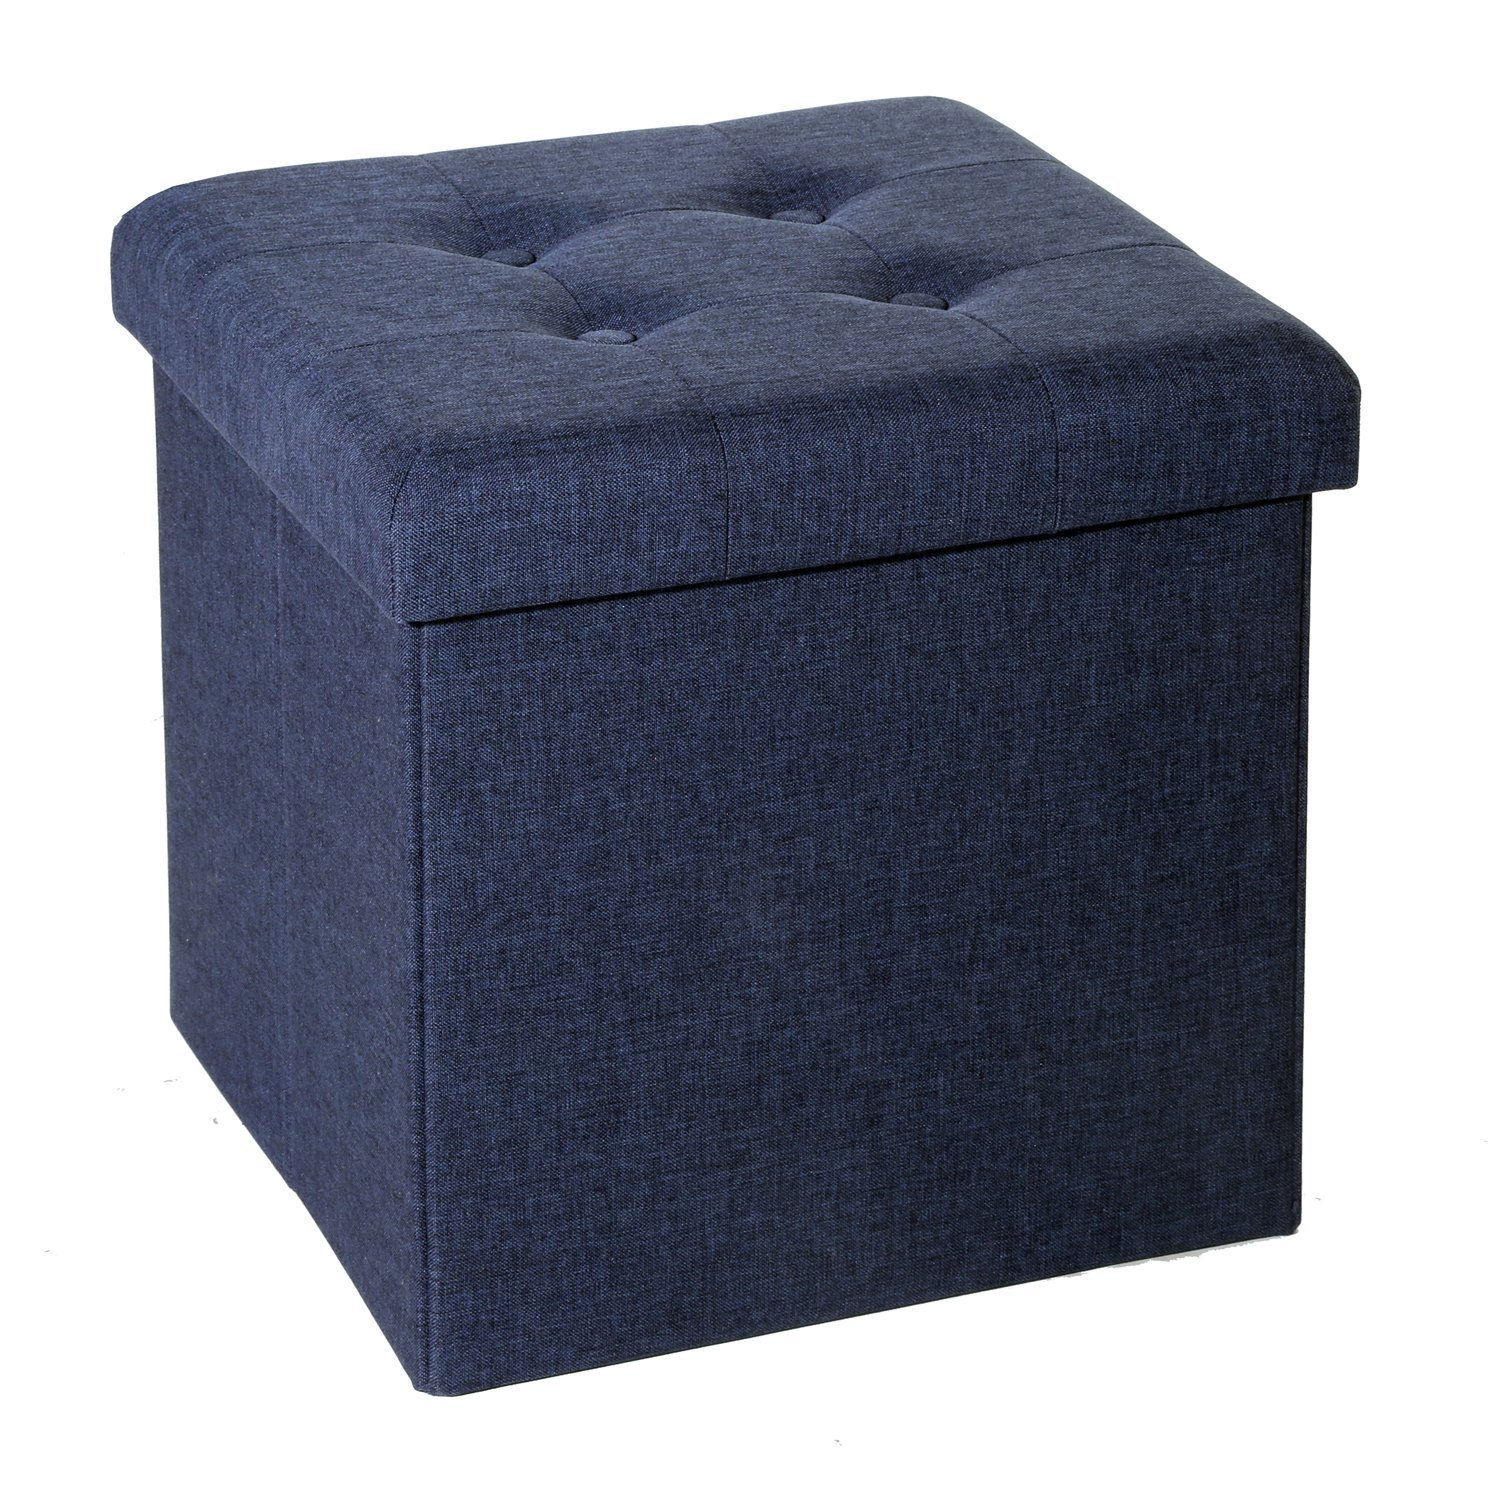 Seville Classics Foldable Tufted Storage Ottoman, Midnight Blue